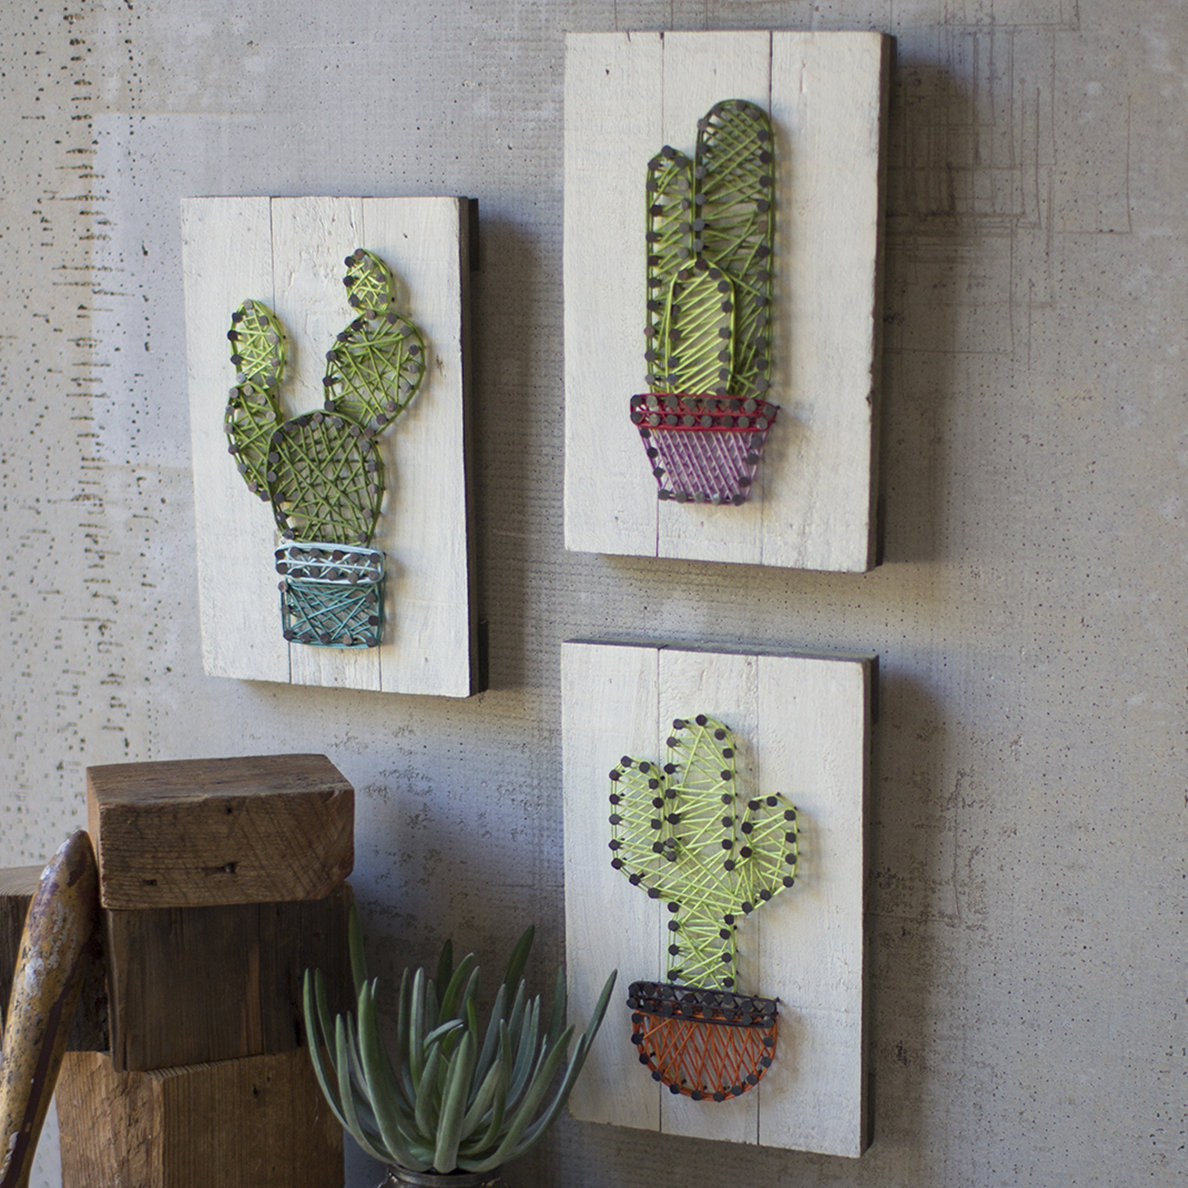 3 Piece Ceramic Flowers Wall Decor Sets In Most Recent 3 Piece Cactus String Art On Wooden Plaques Wall Décor Set (View 3 of 20)